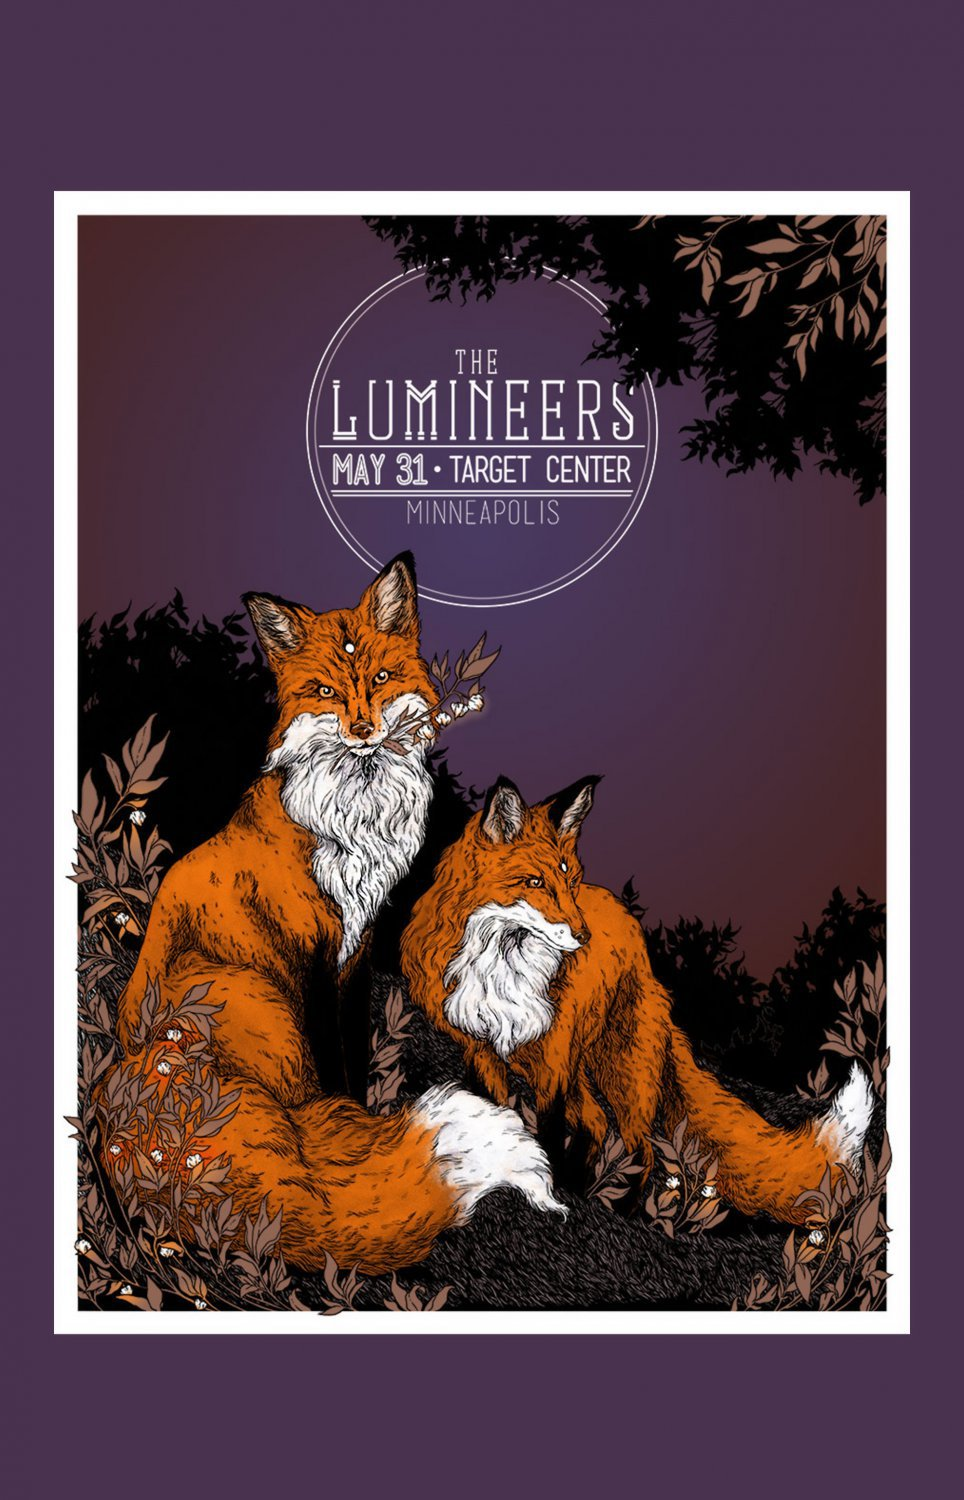 The Lumineers Tour Concert  18x28 inches Canvas Print